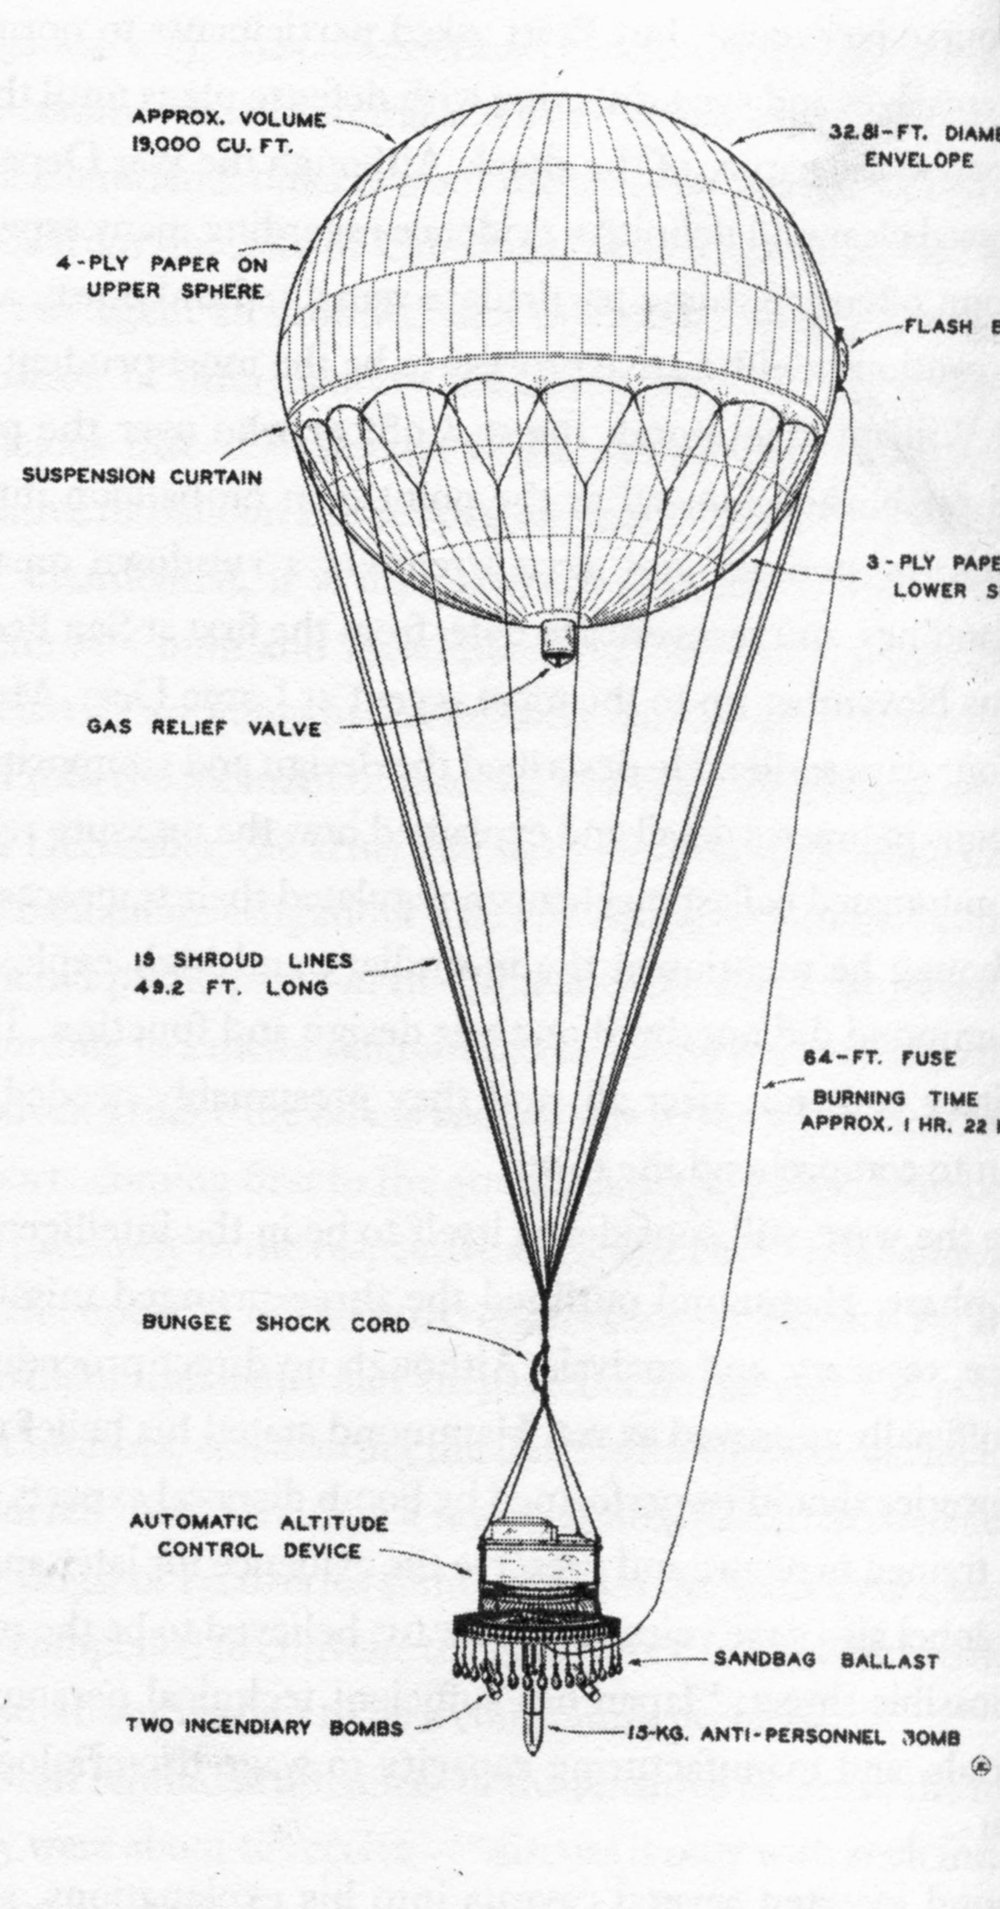 Schematic of the Japanese fire balloon.The entire outfit measured 100 feet from the top of the balloon to the bottom of the gondola.